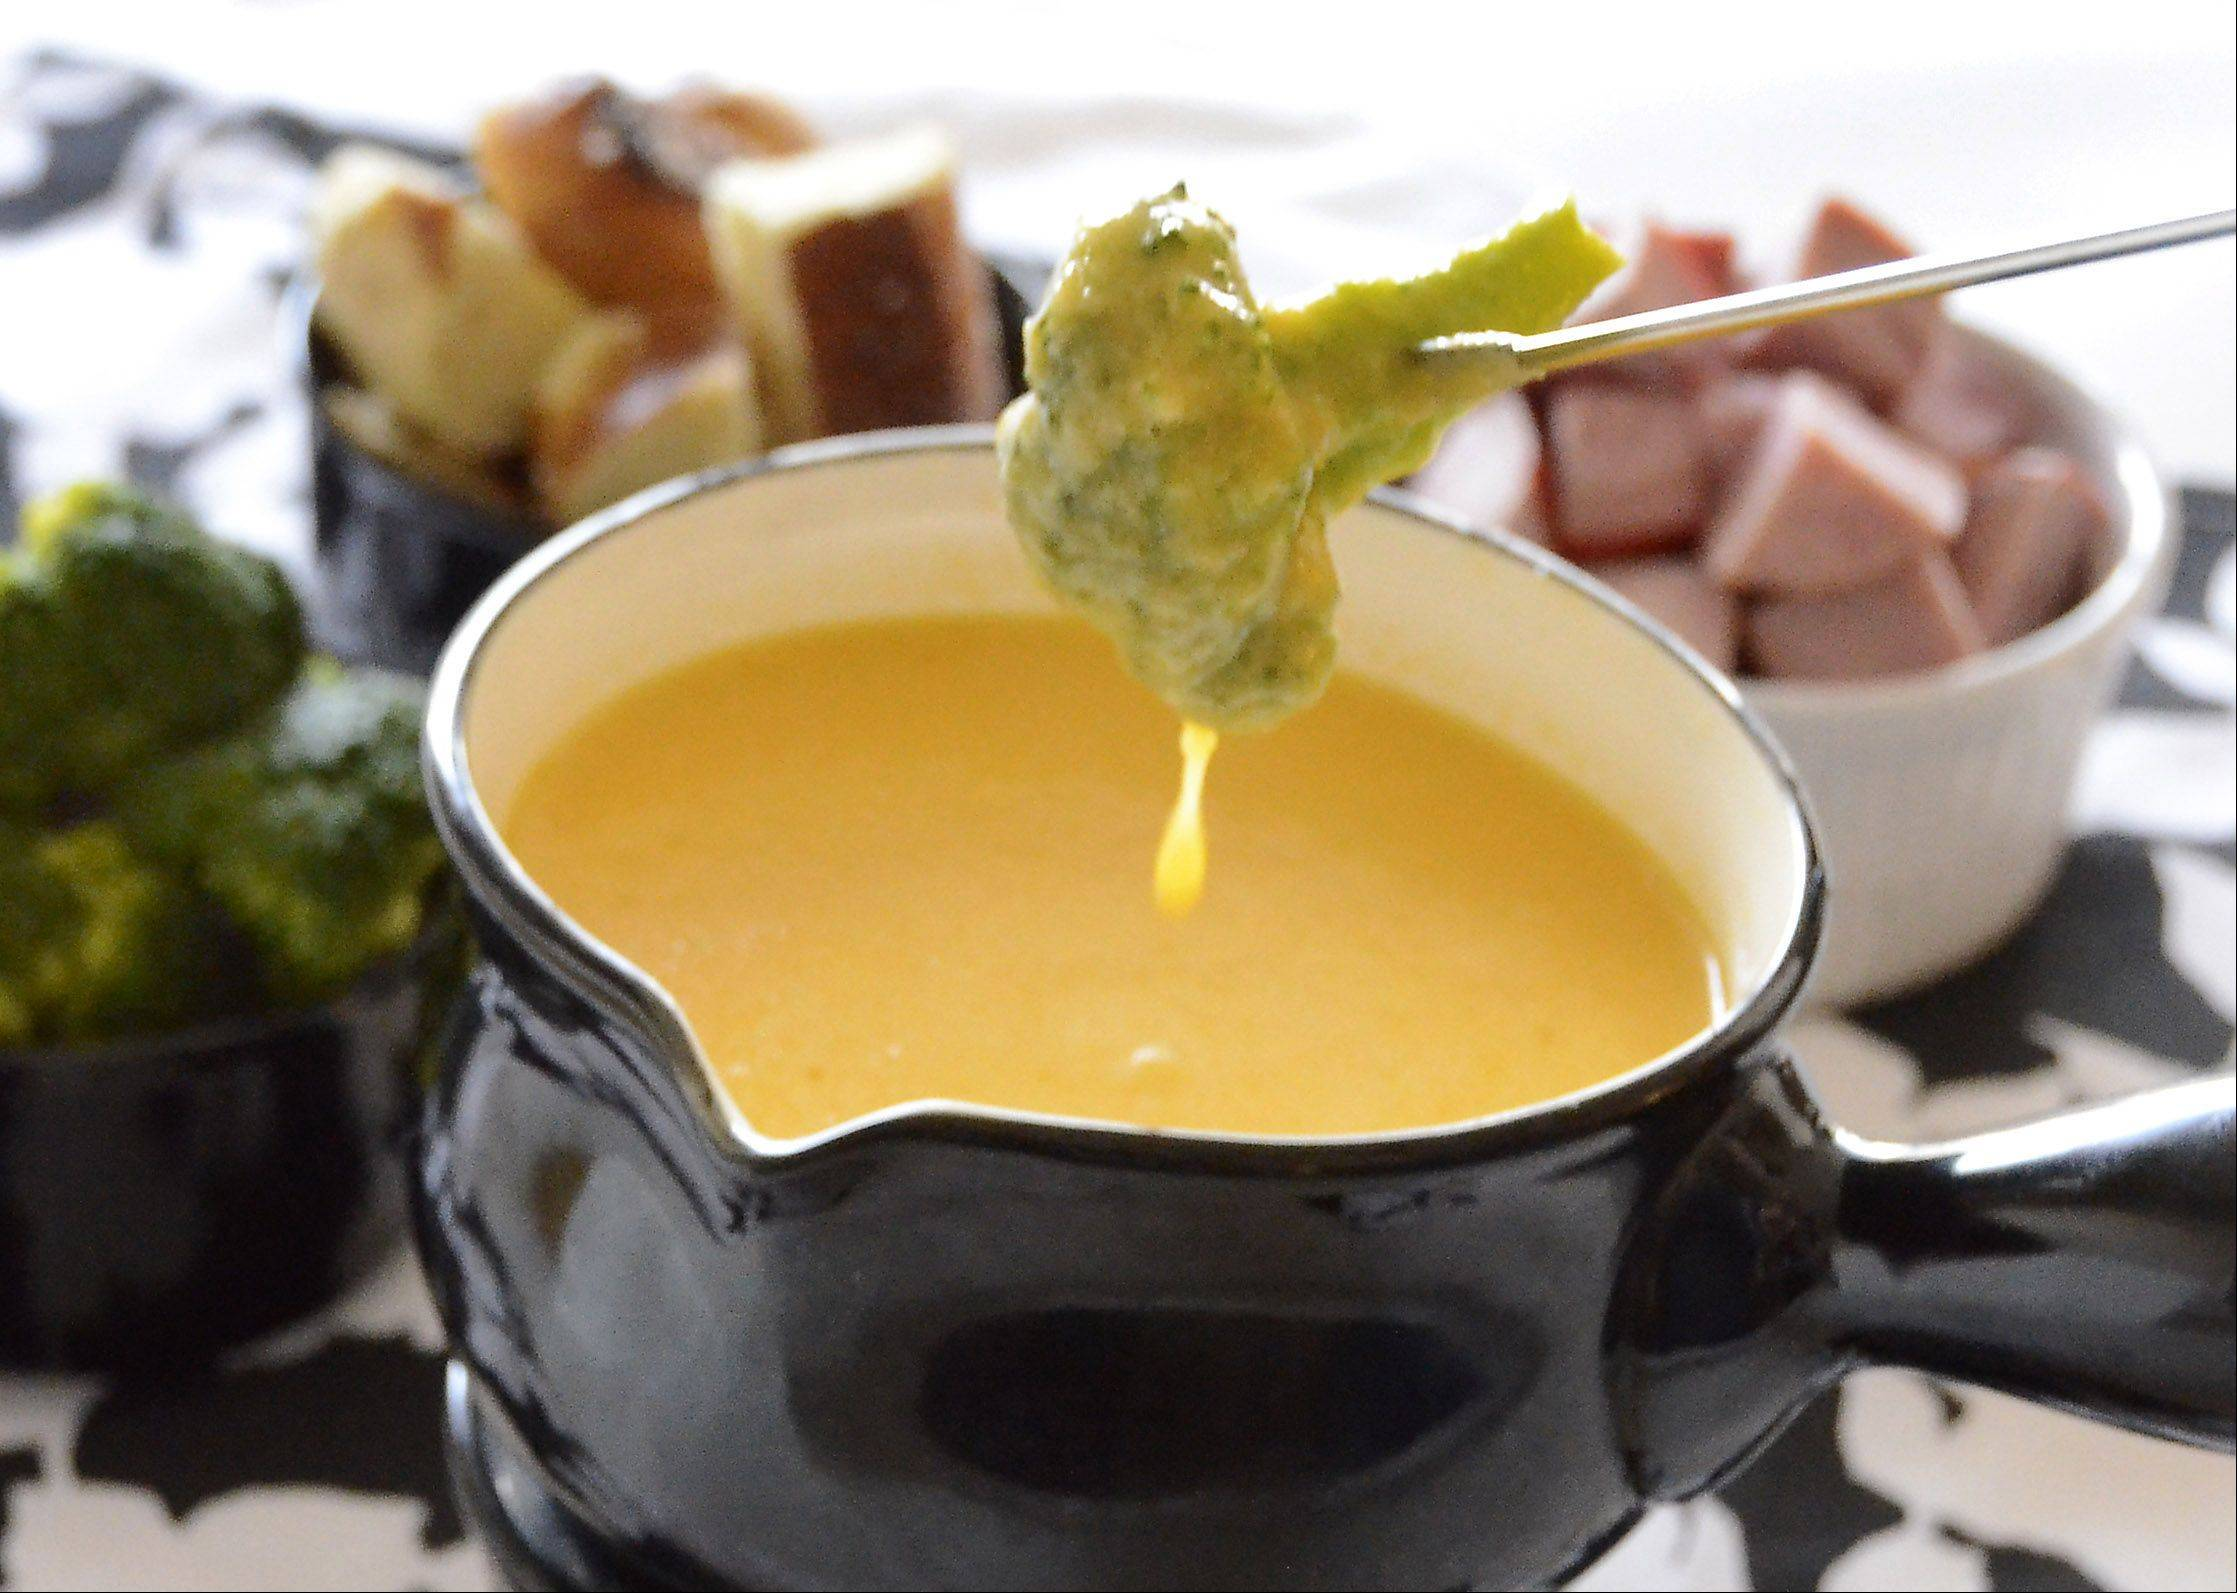 Cheese fondue makes a fun, festive meal that everyone can enjoy.